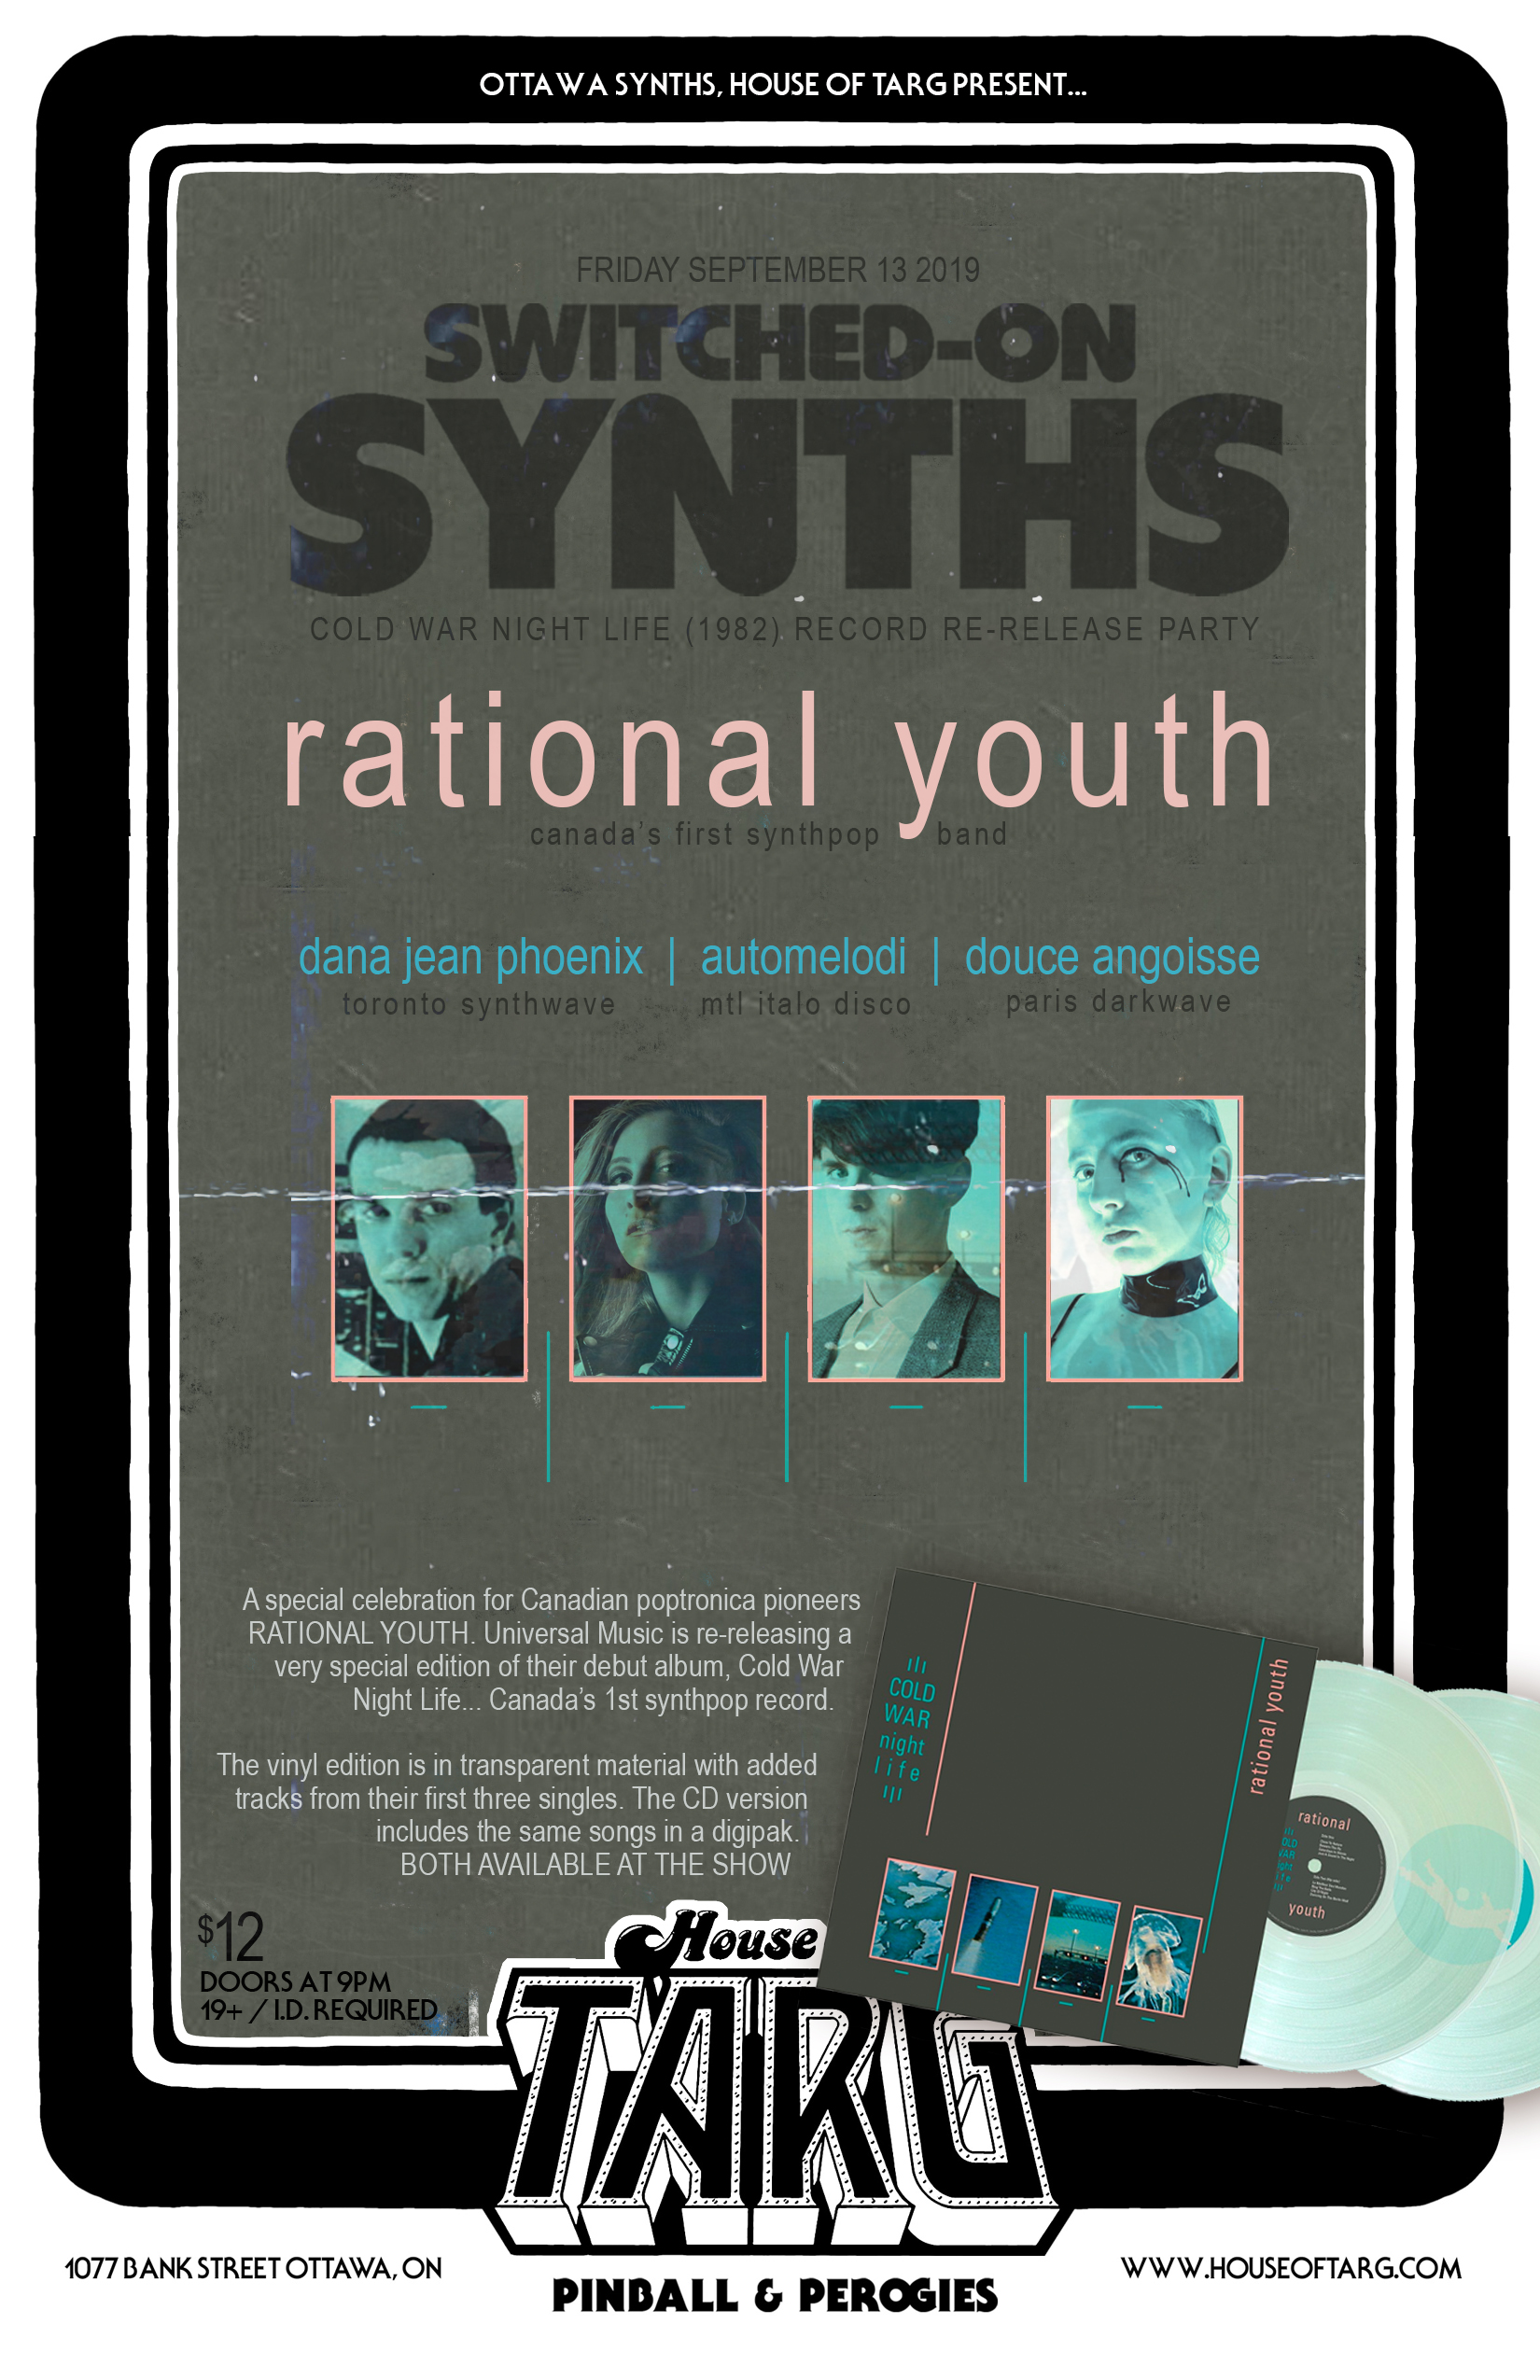 Switched On Synths: Cold War Night Life Edition w/ RATIONAL